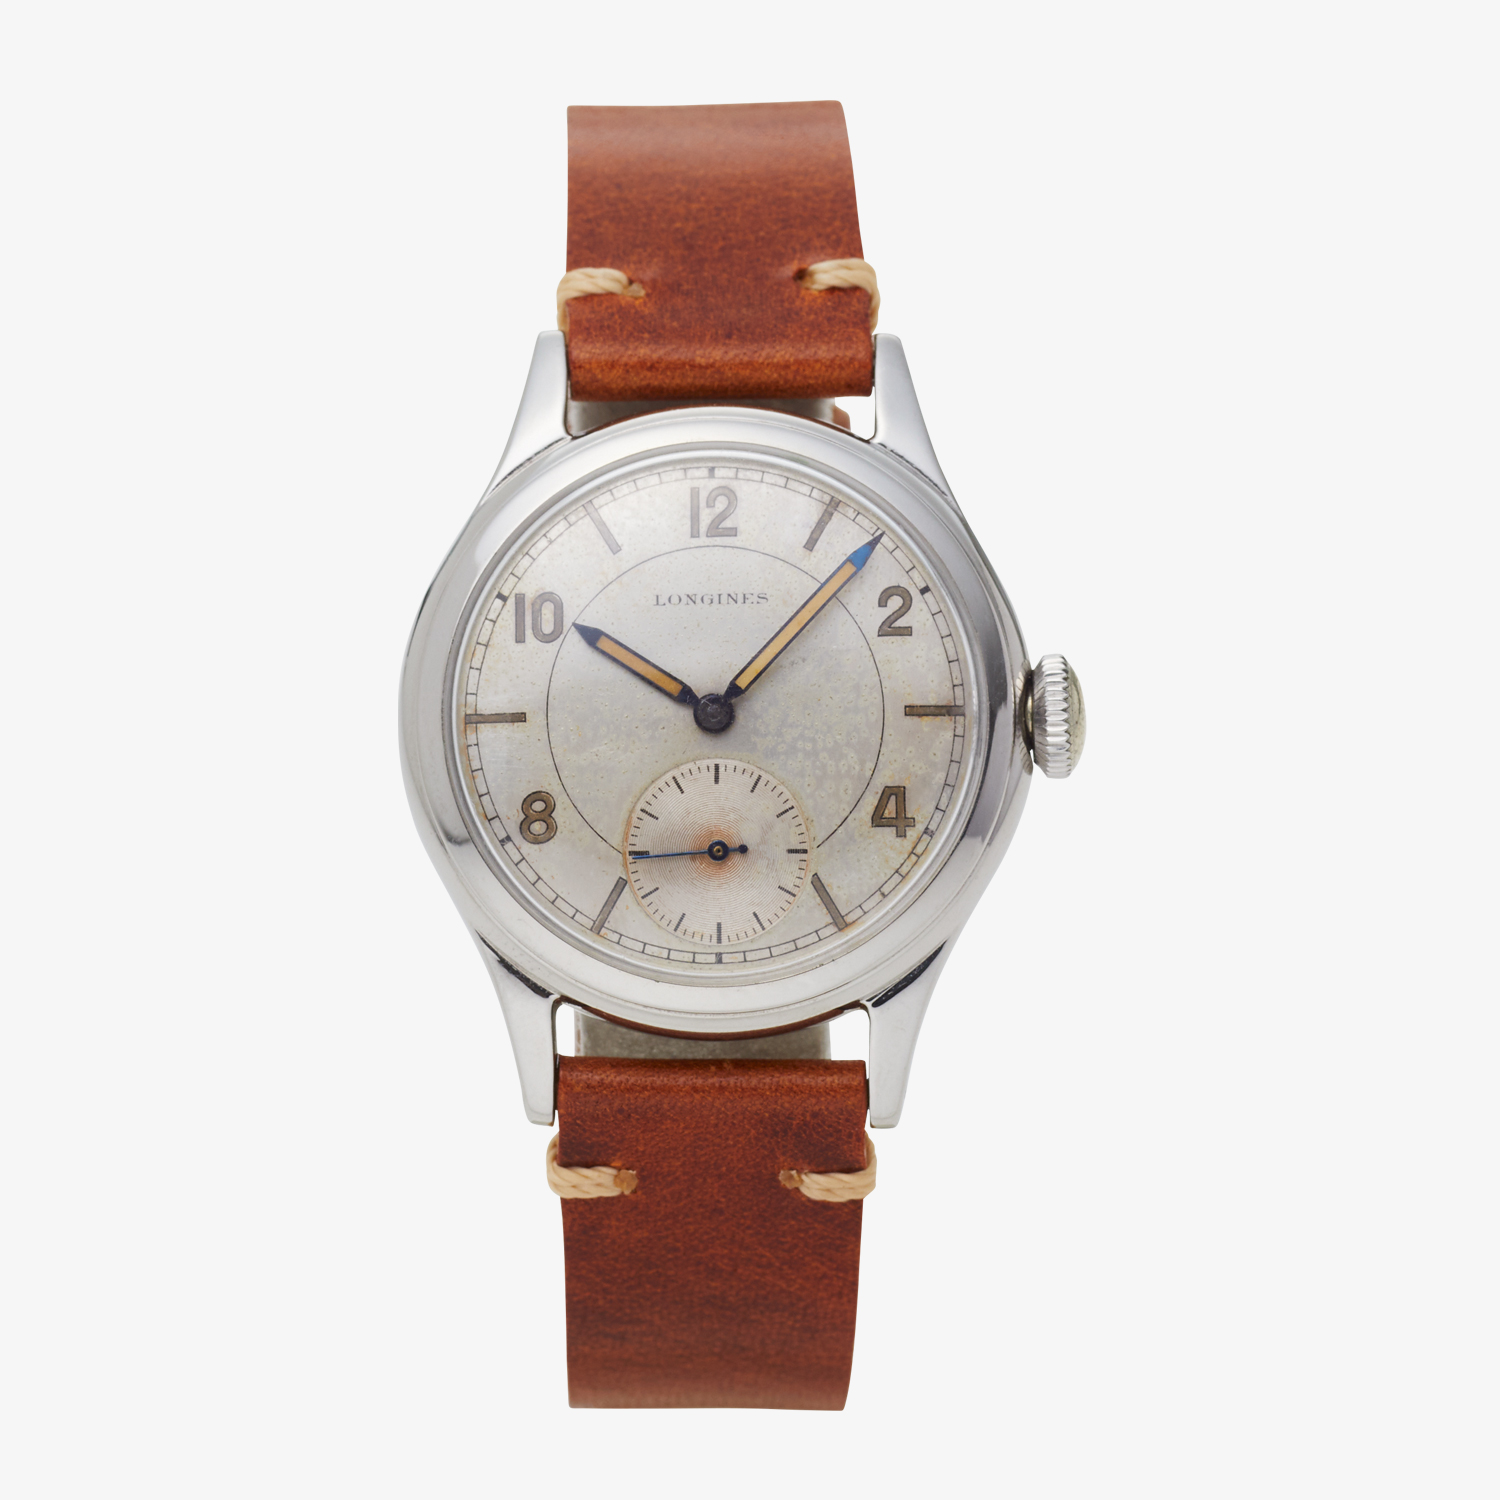 LONGINES|5 point Arabic Index|Small Second - 70's|VINTAGE LONGINES